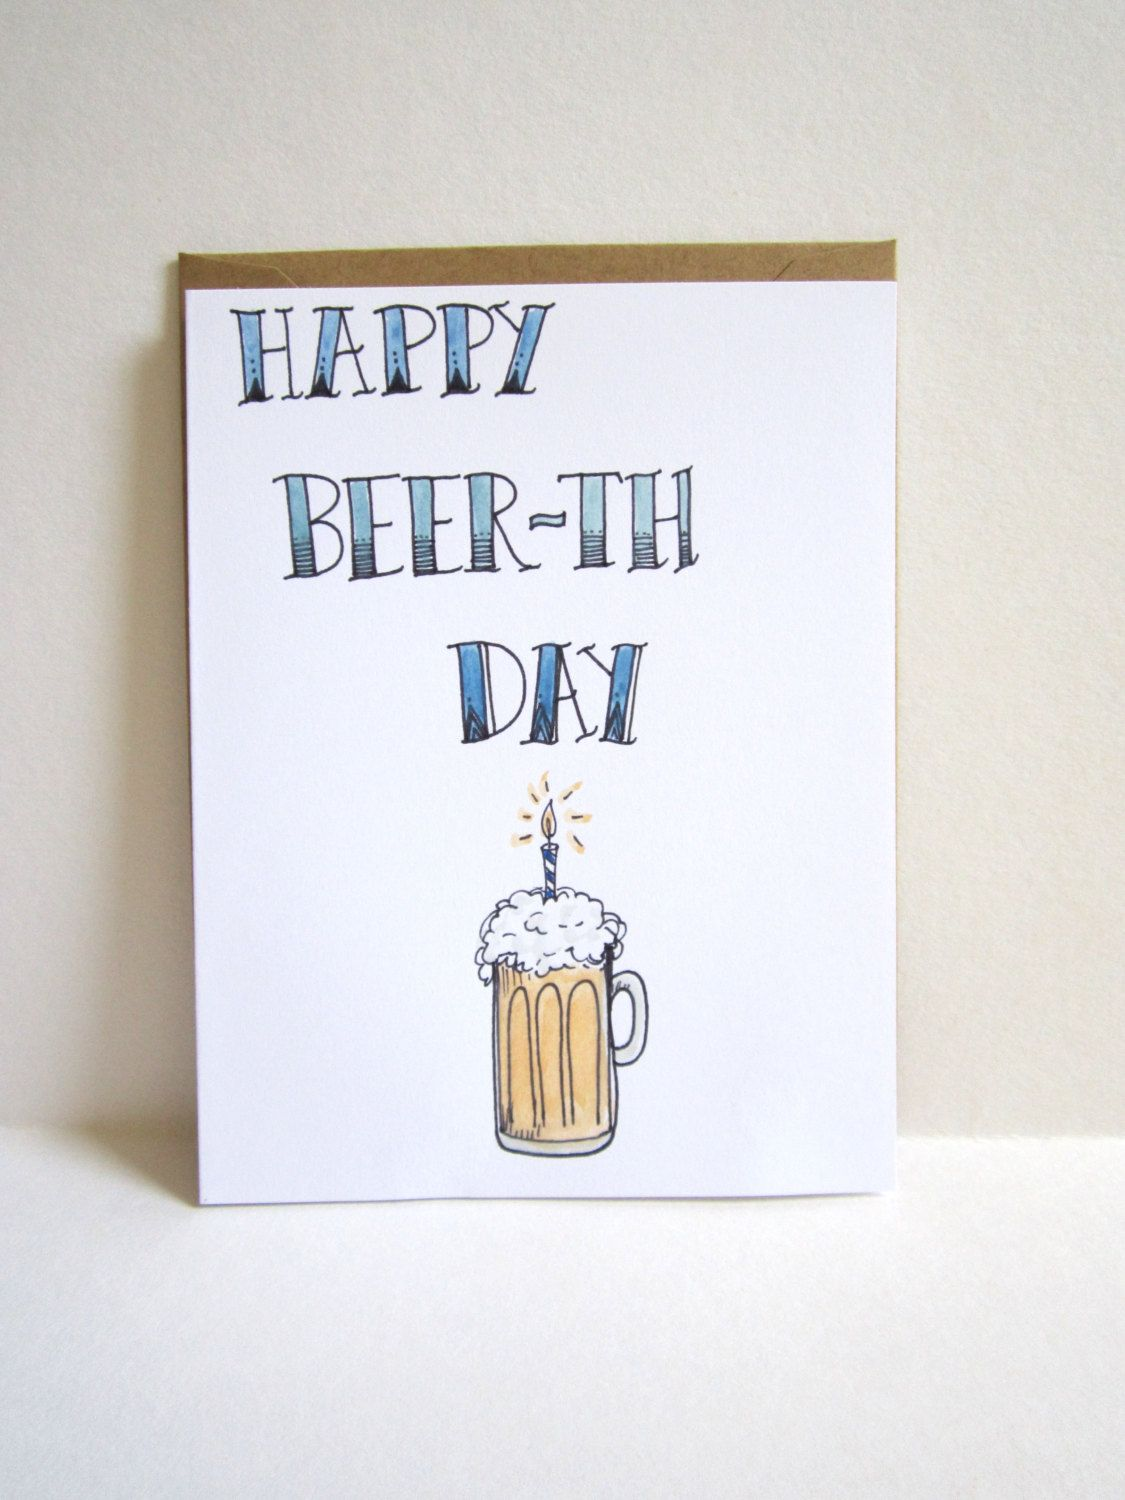 The Illustrated Account Happy Beer Th Day Card Funny Birthday